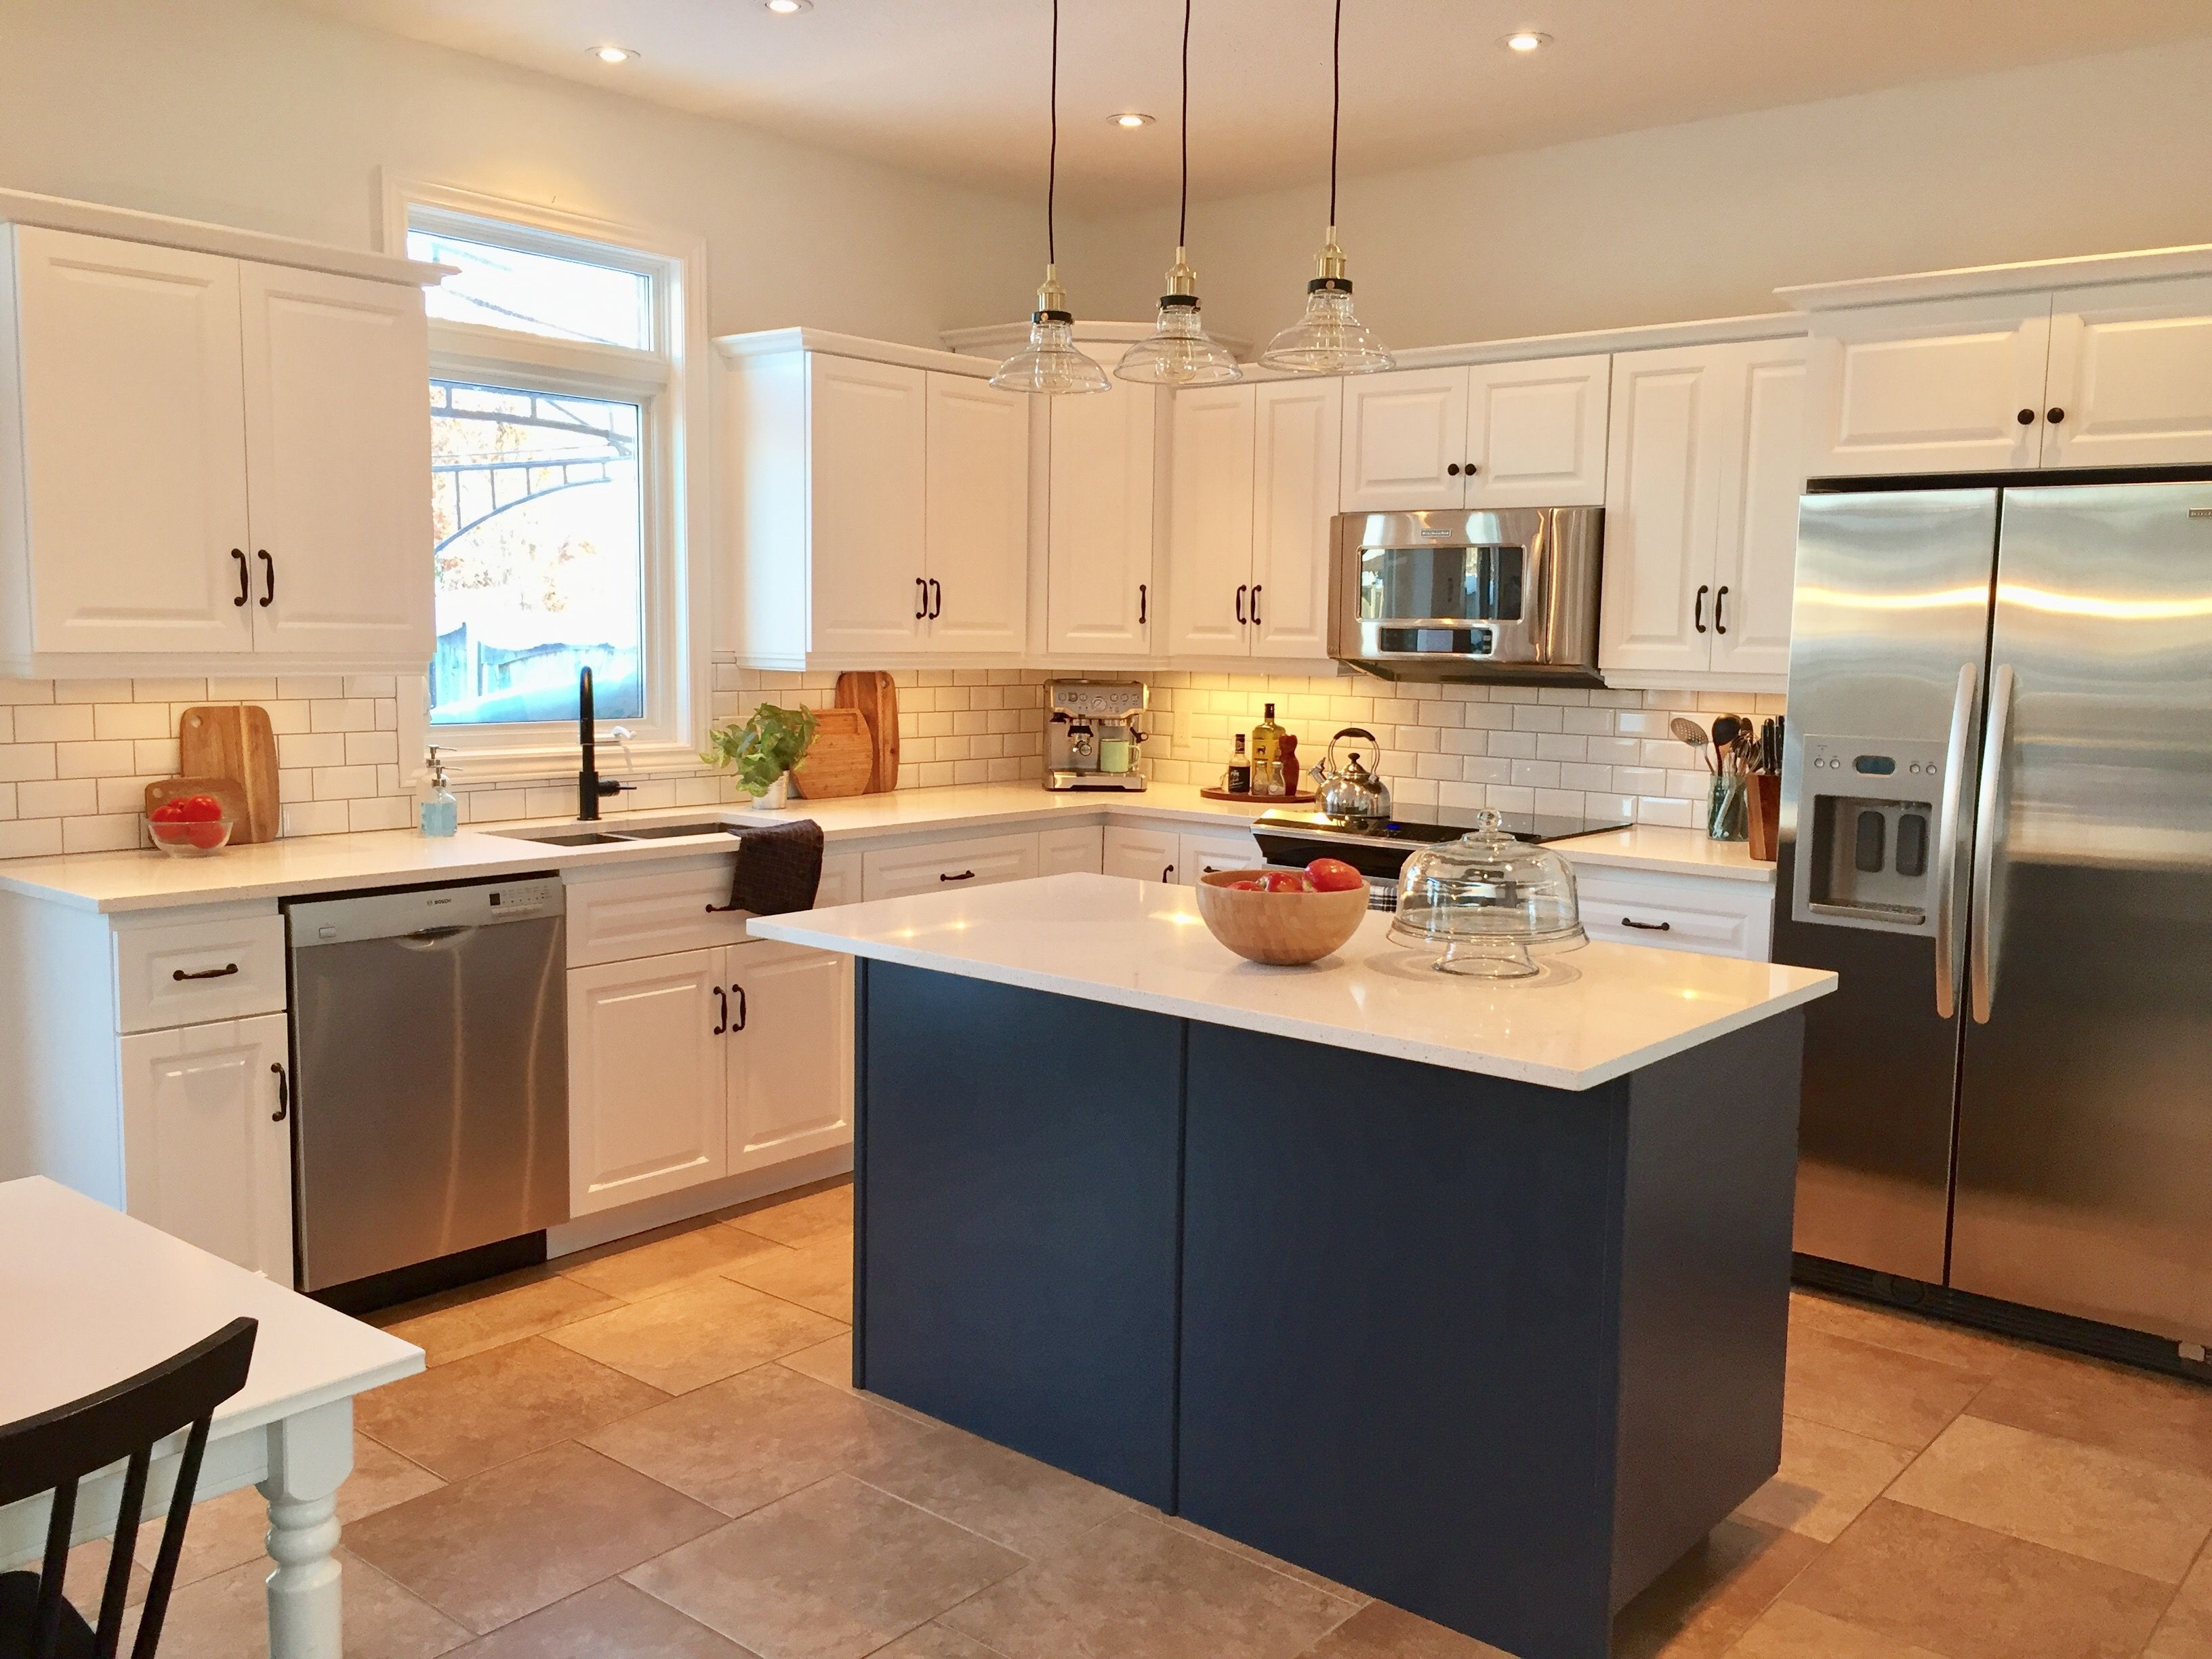 hale navy island, quartz counters, chantilly lace cabinets | val's